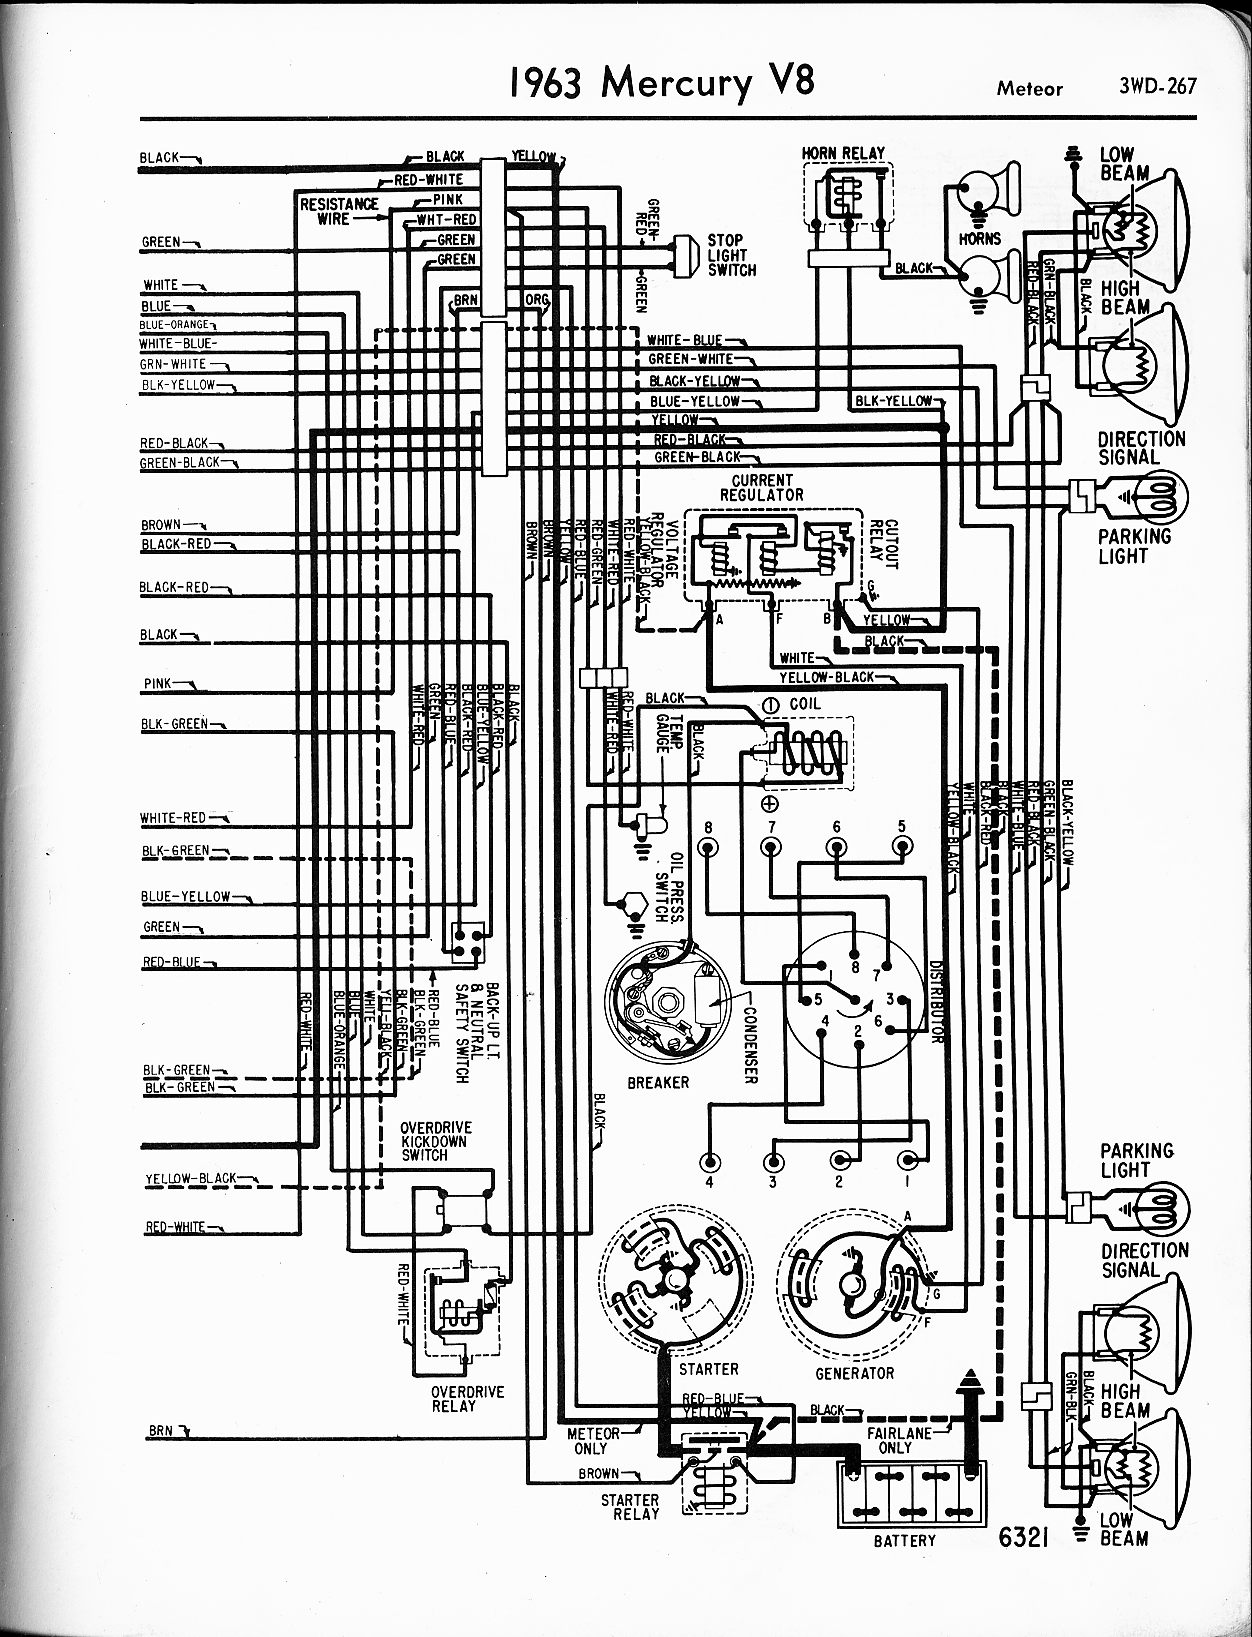 1955 Mercury Monterey Wiring Harness, 1955, Free Engine